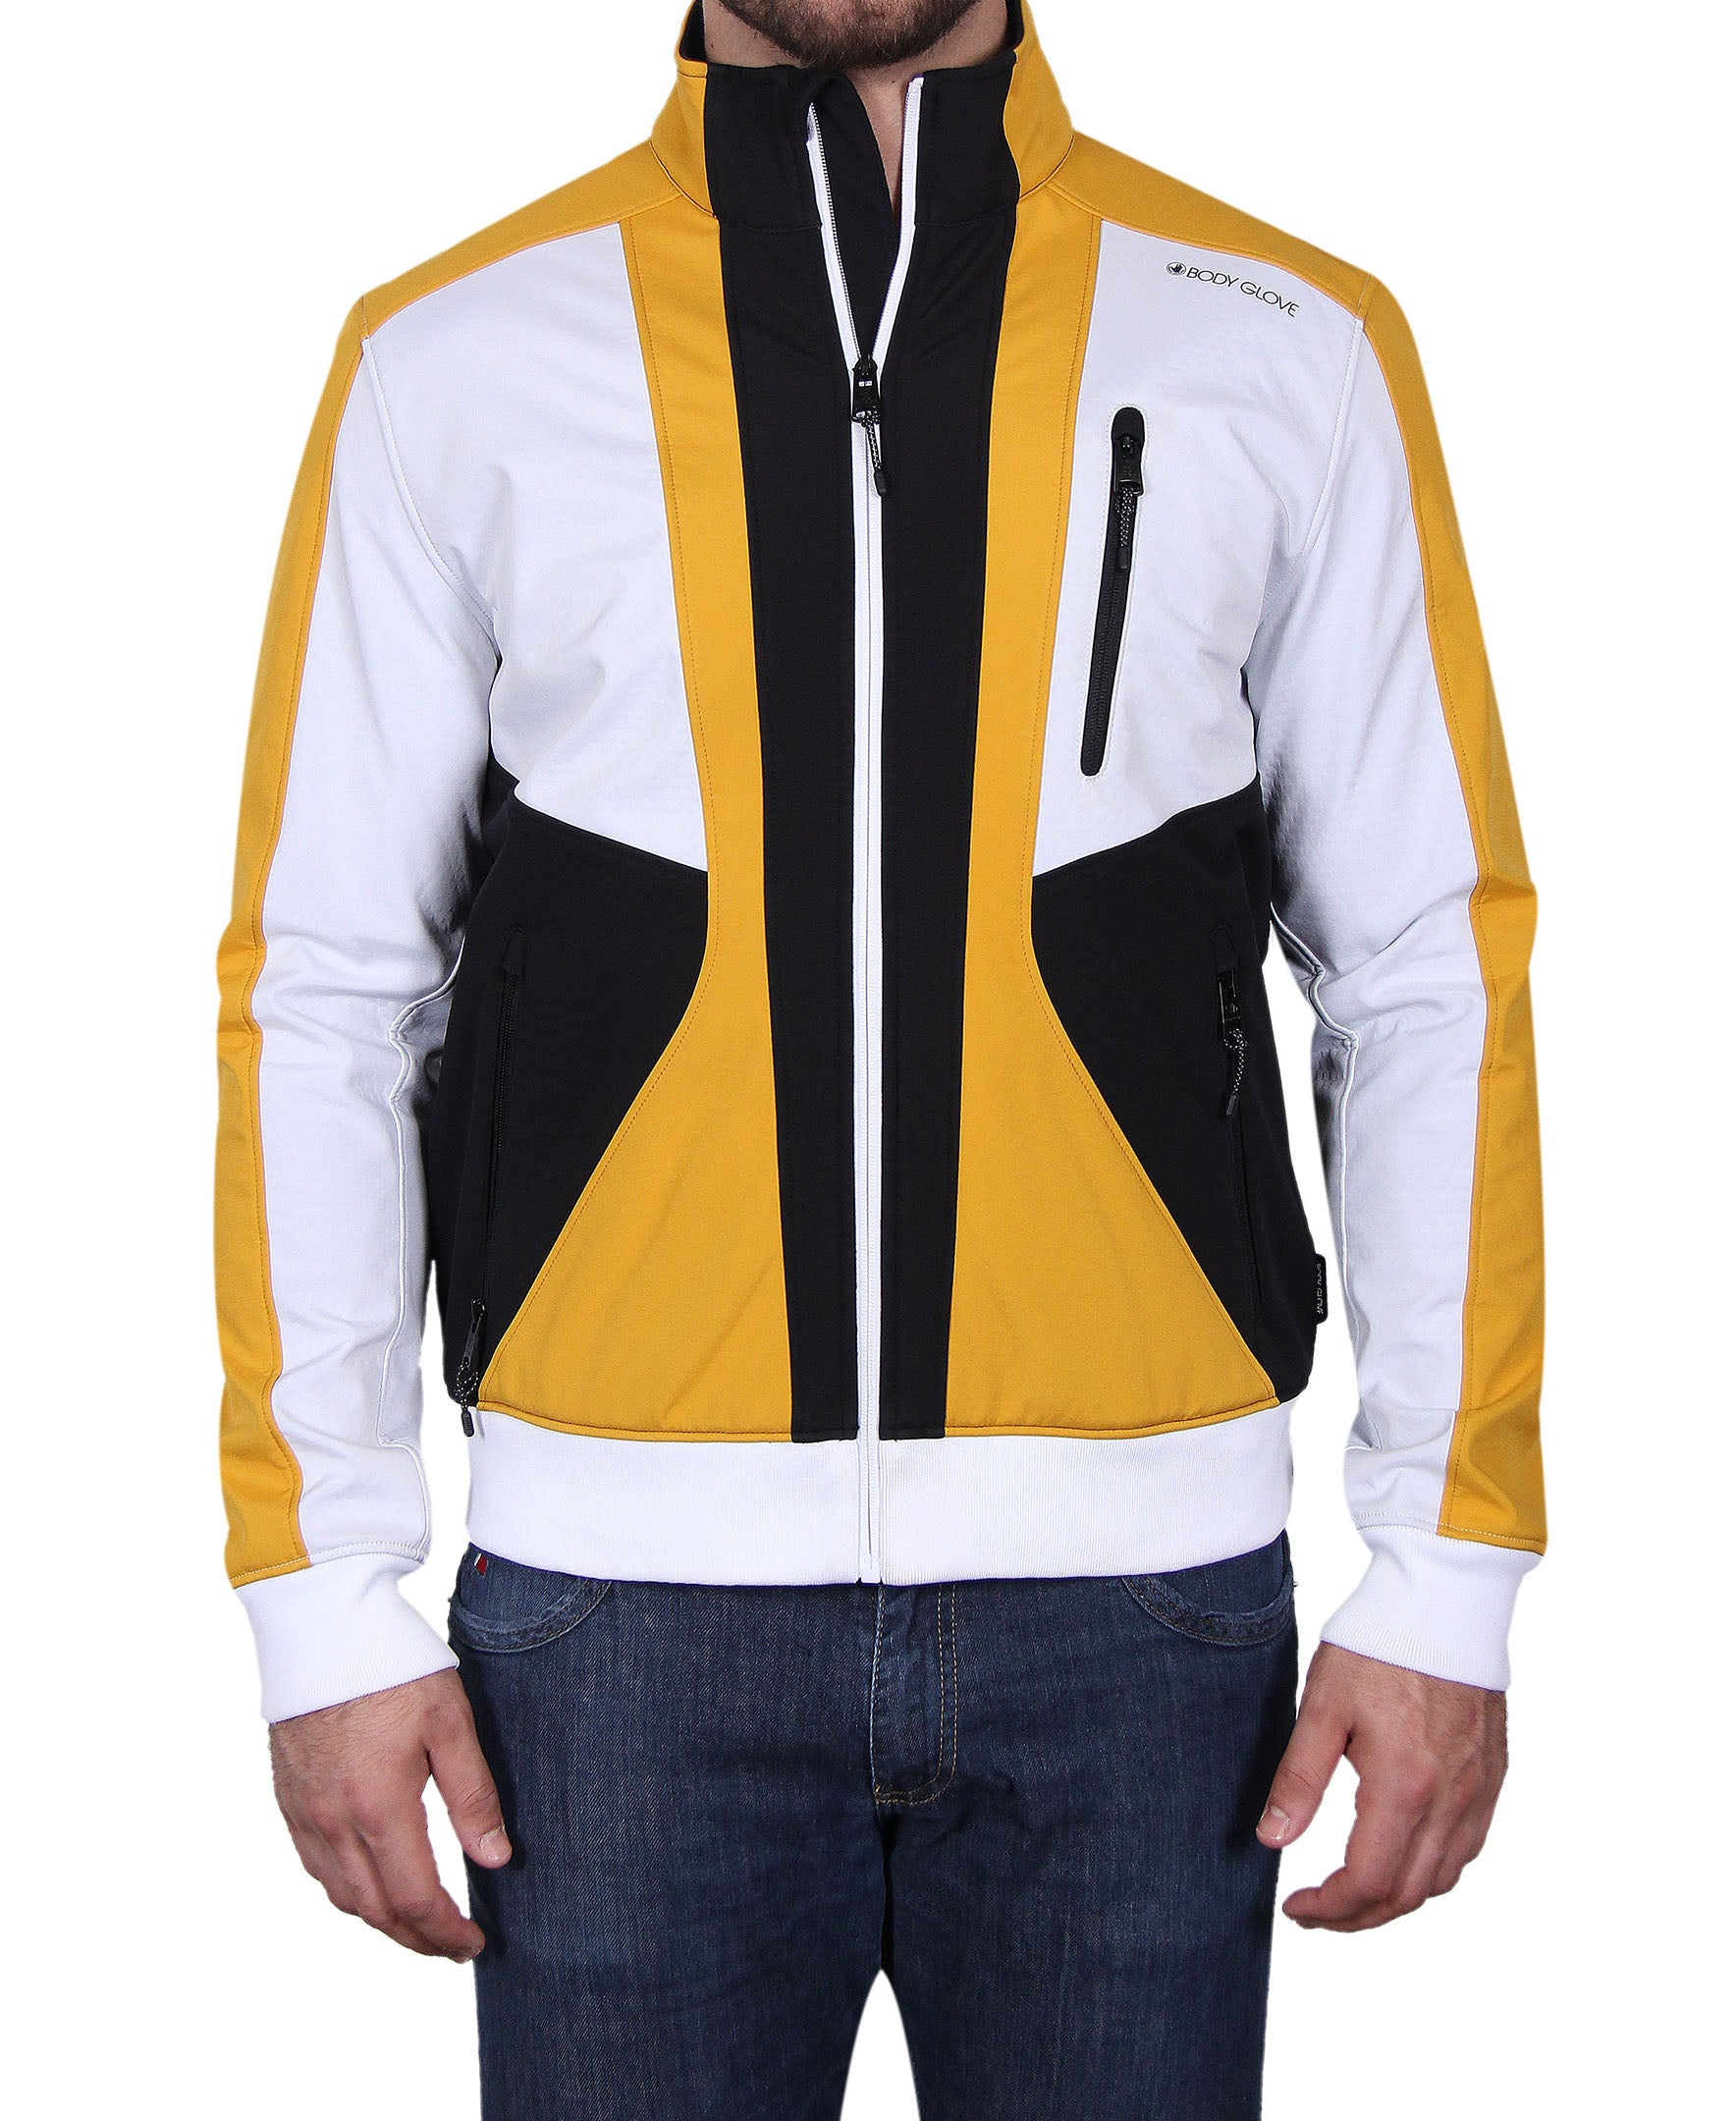 Men's Tri-Color Soft Shell Jacket - Yellow